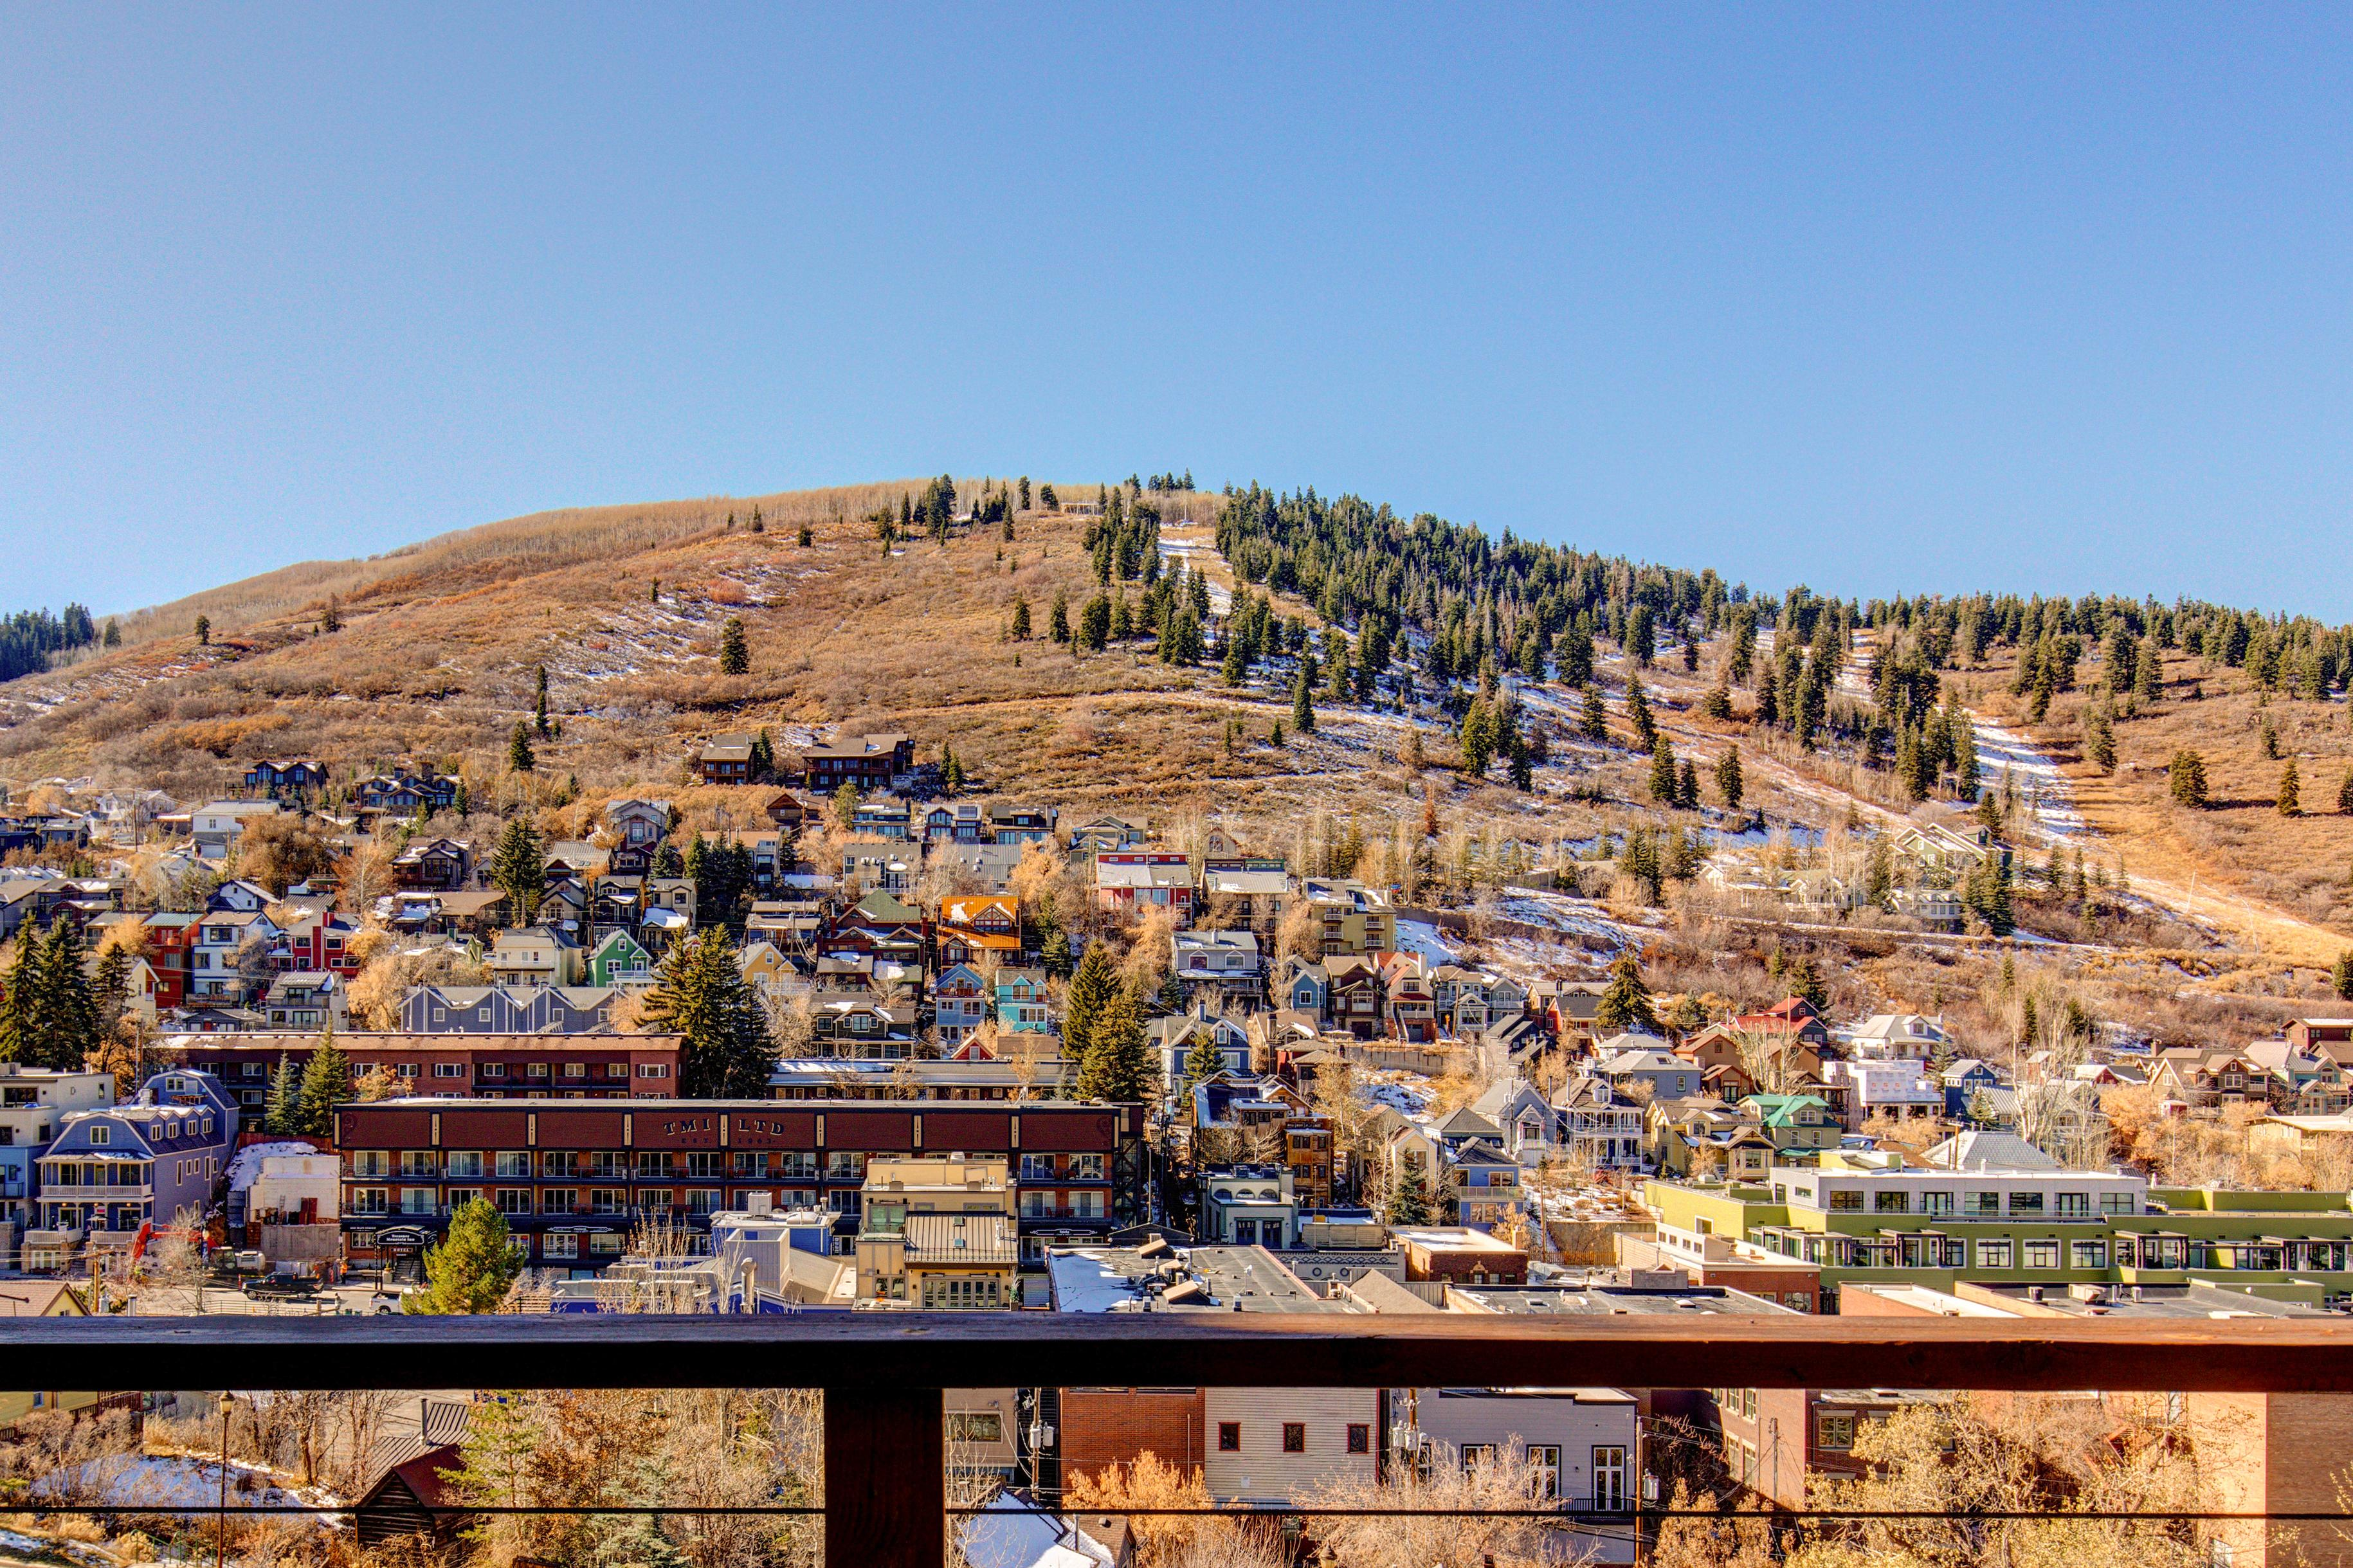 The main balcony overlooks the mountains and downtown Park City.